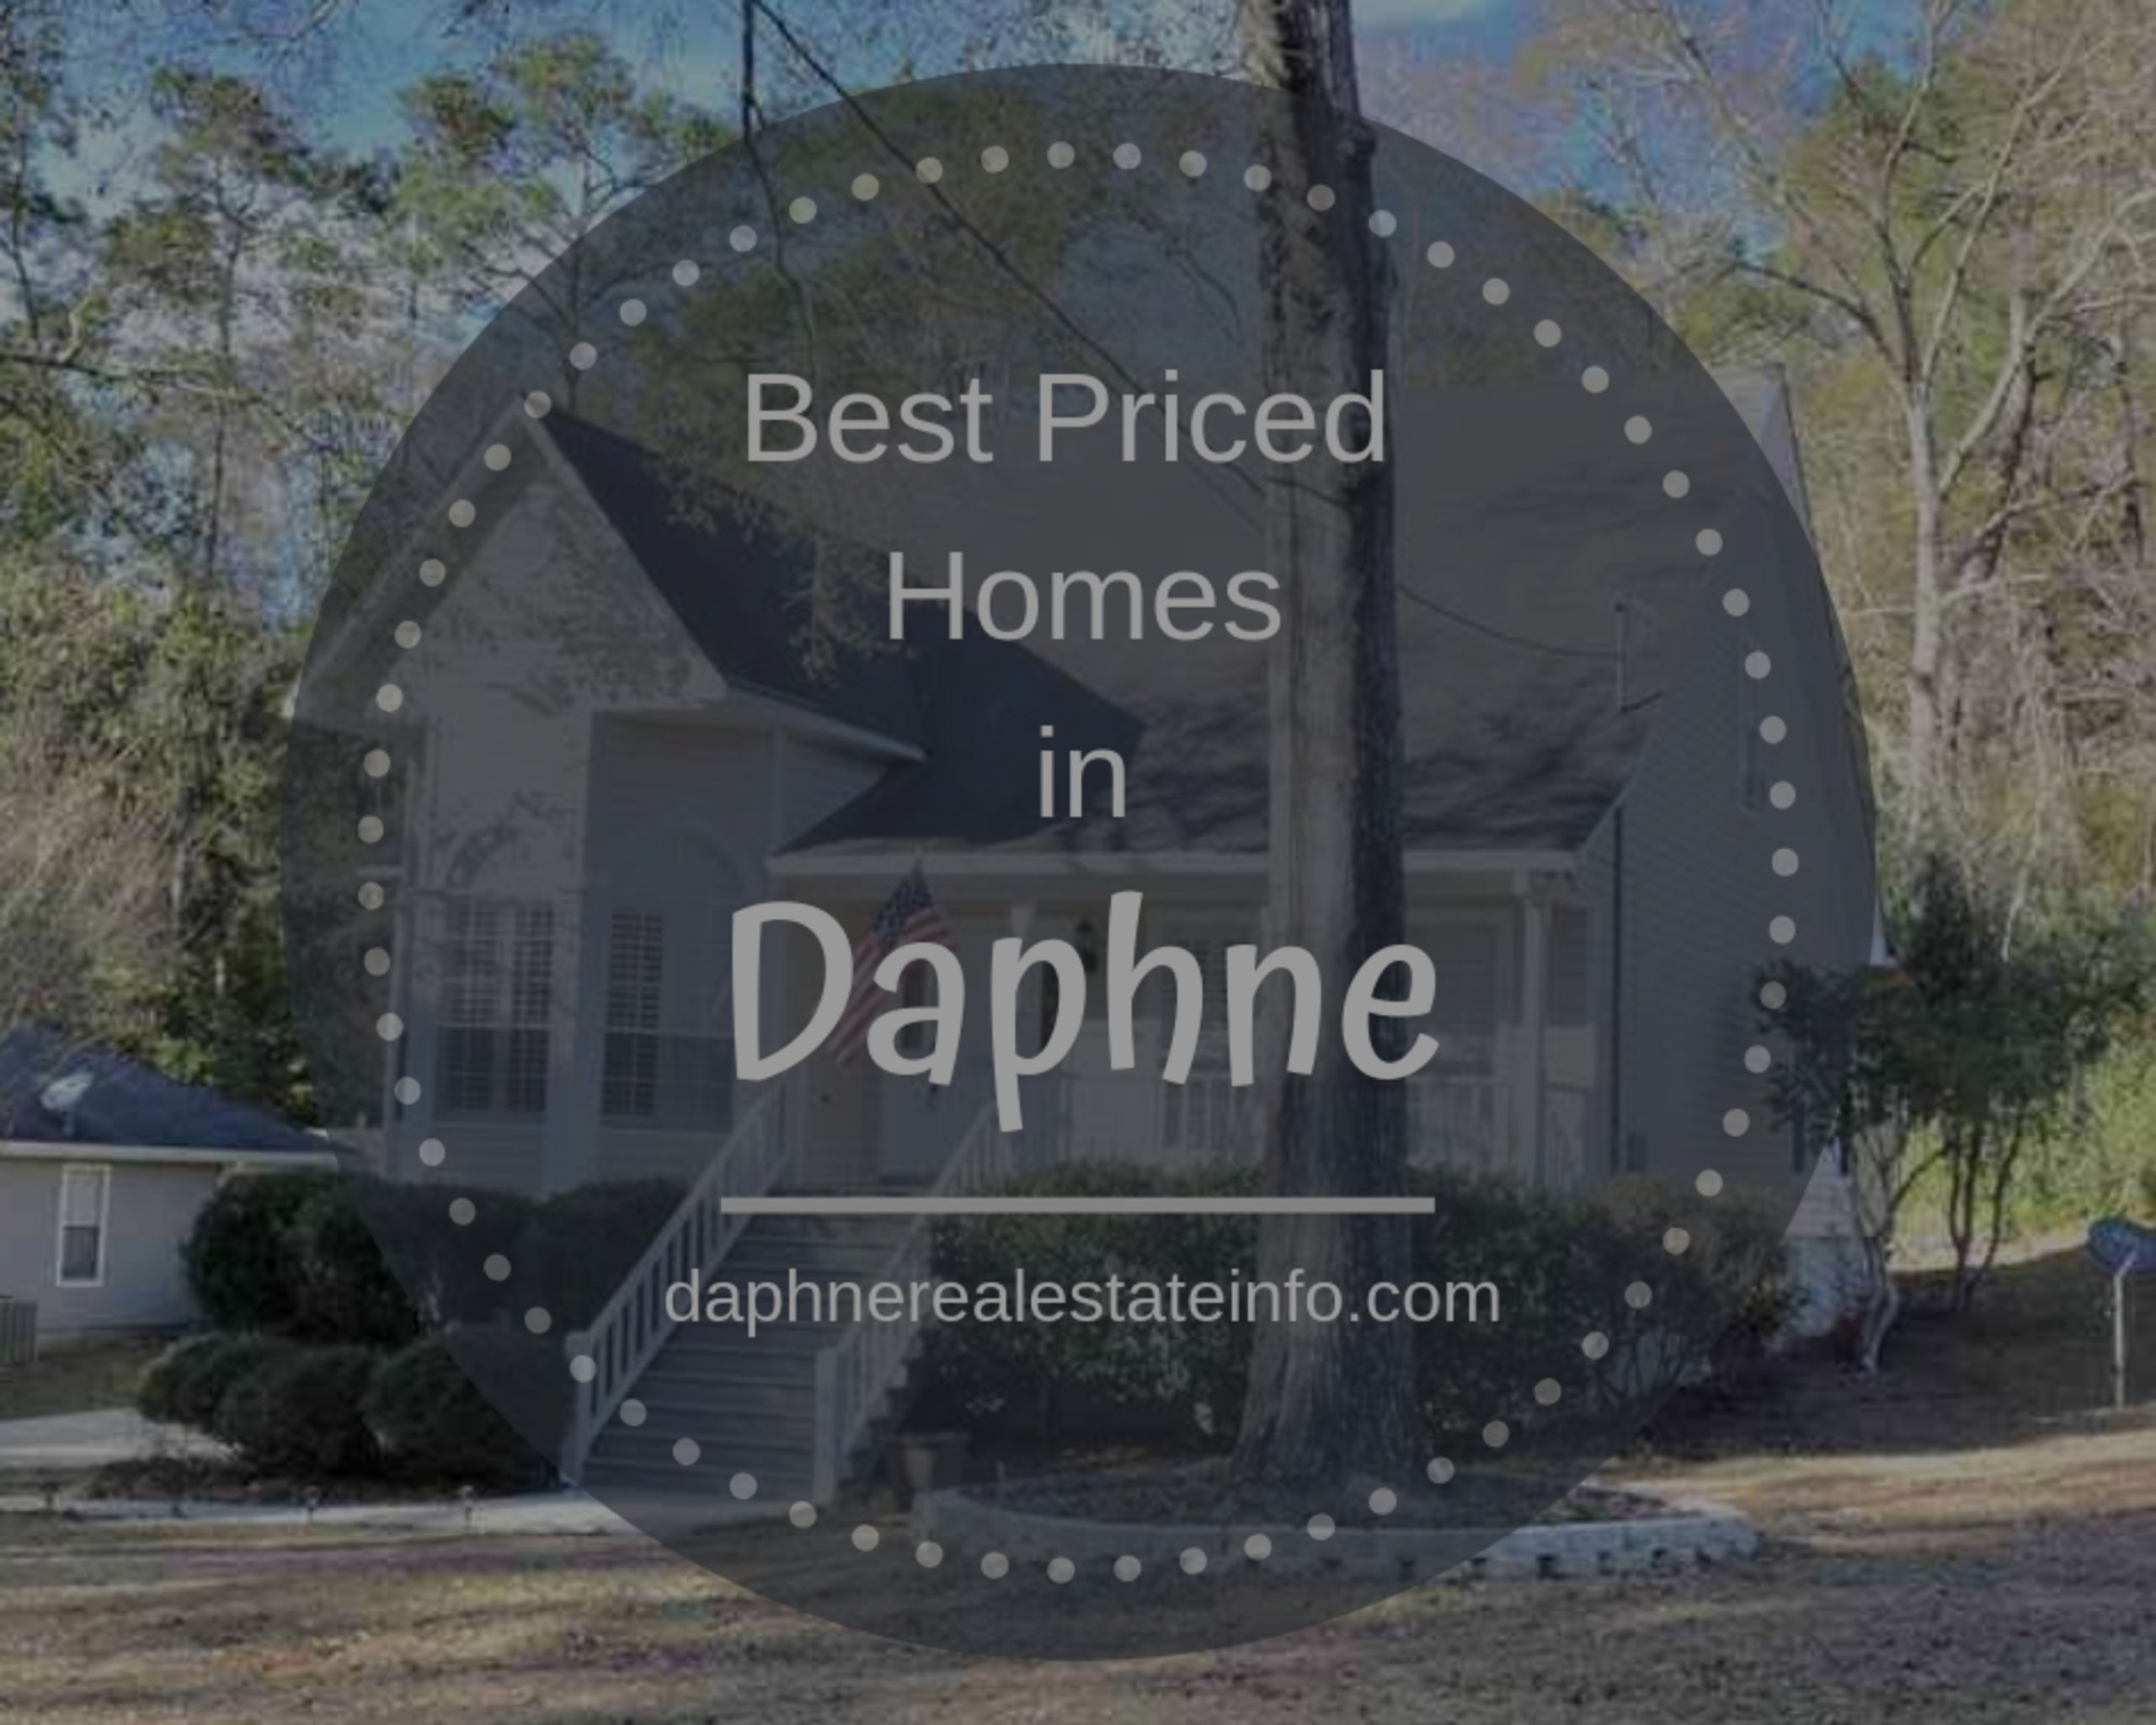 Best Priced Homes in Daphne AL – Feb 2019